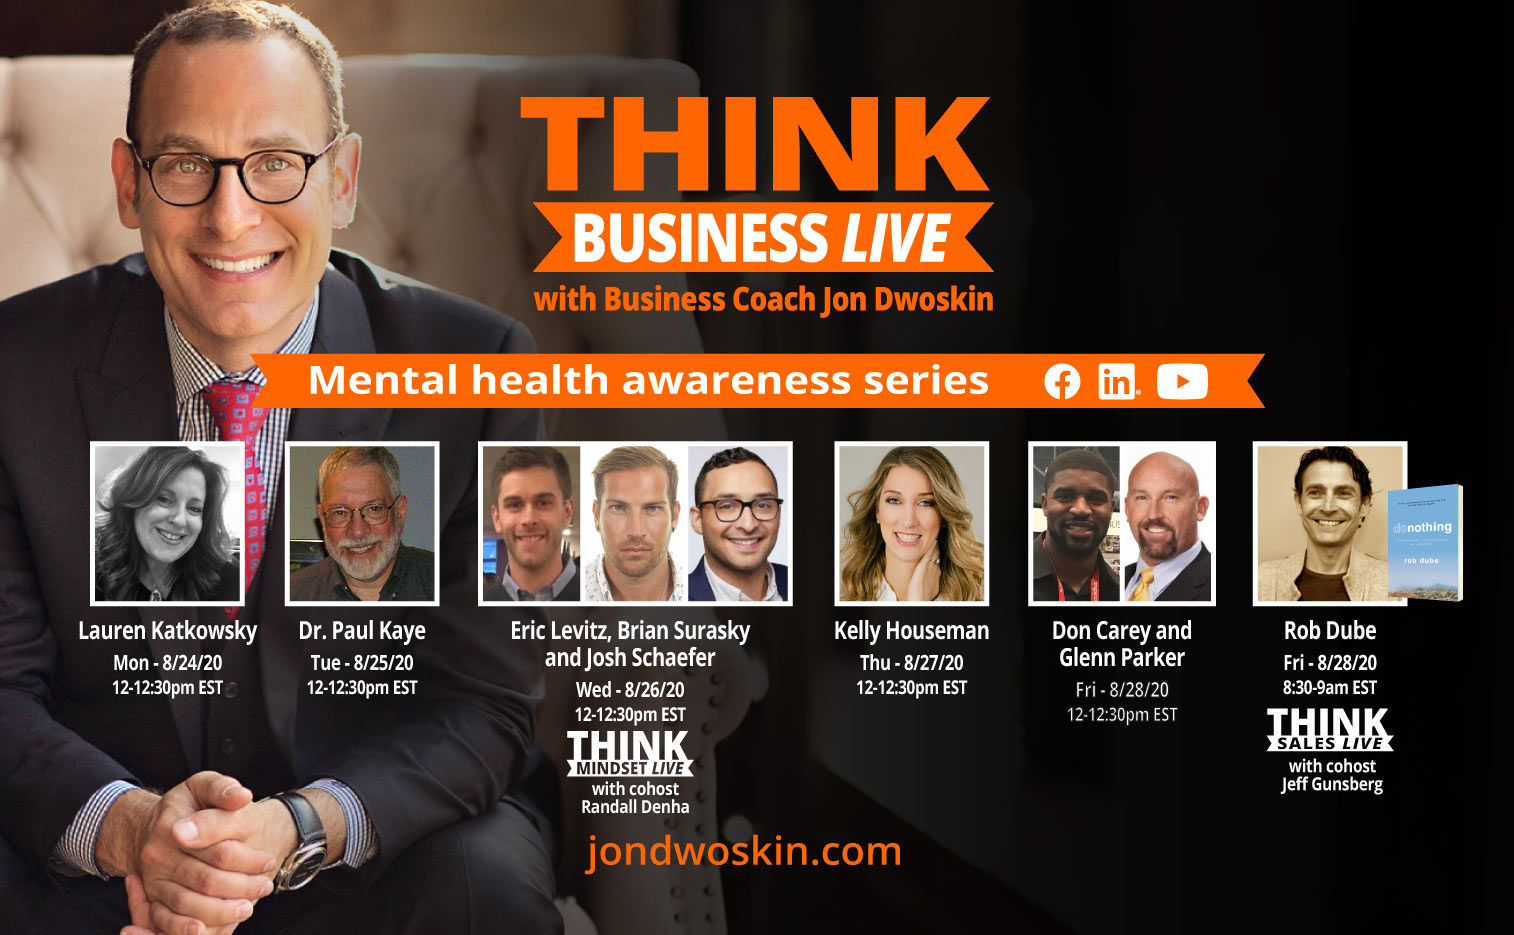 THINK Business LIVE: Mental Health Awareness Series